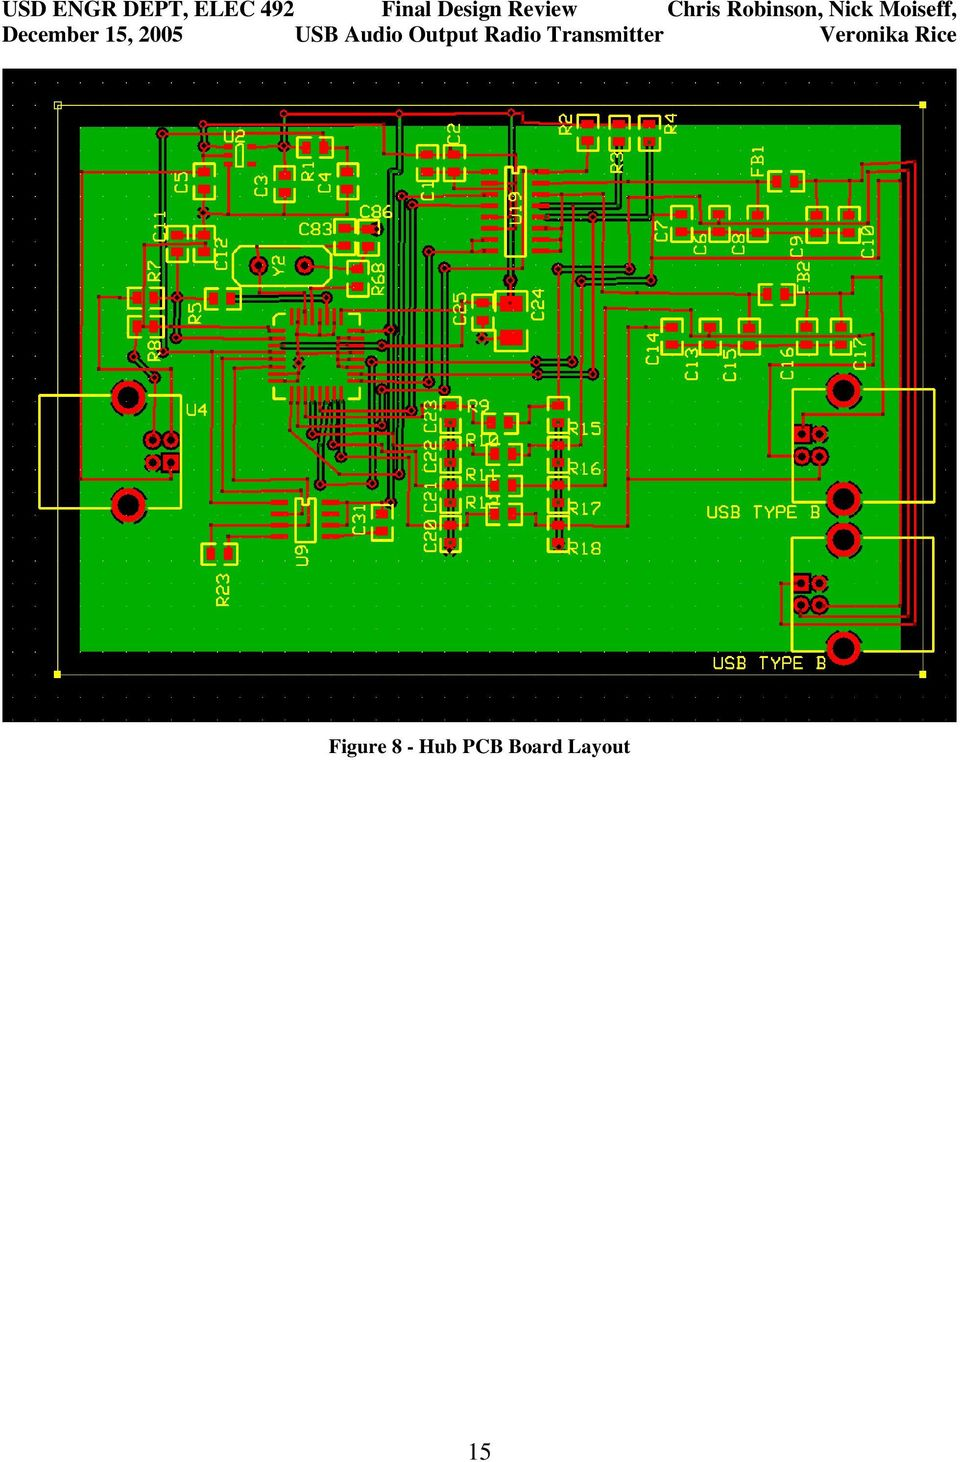 Usb Audio Output Transmitter Electrical Engineering Senior Design Pdf Mp3 Player Circuit Board Rev A Schematic Diagrams